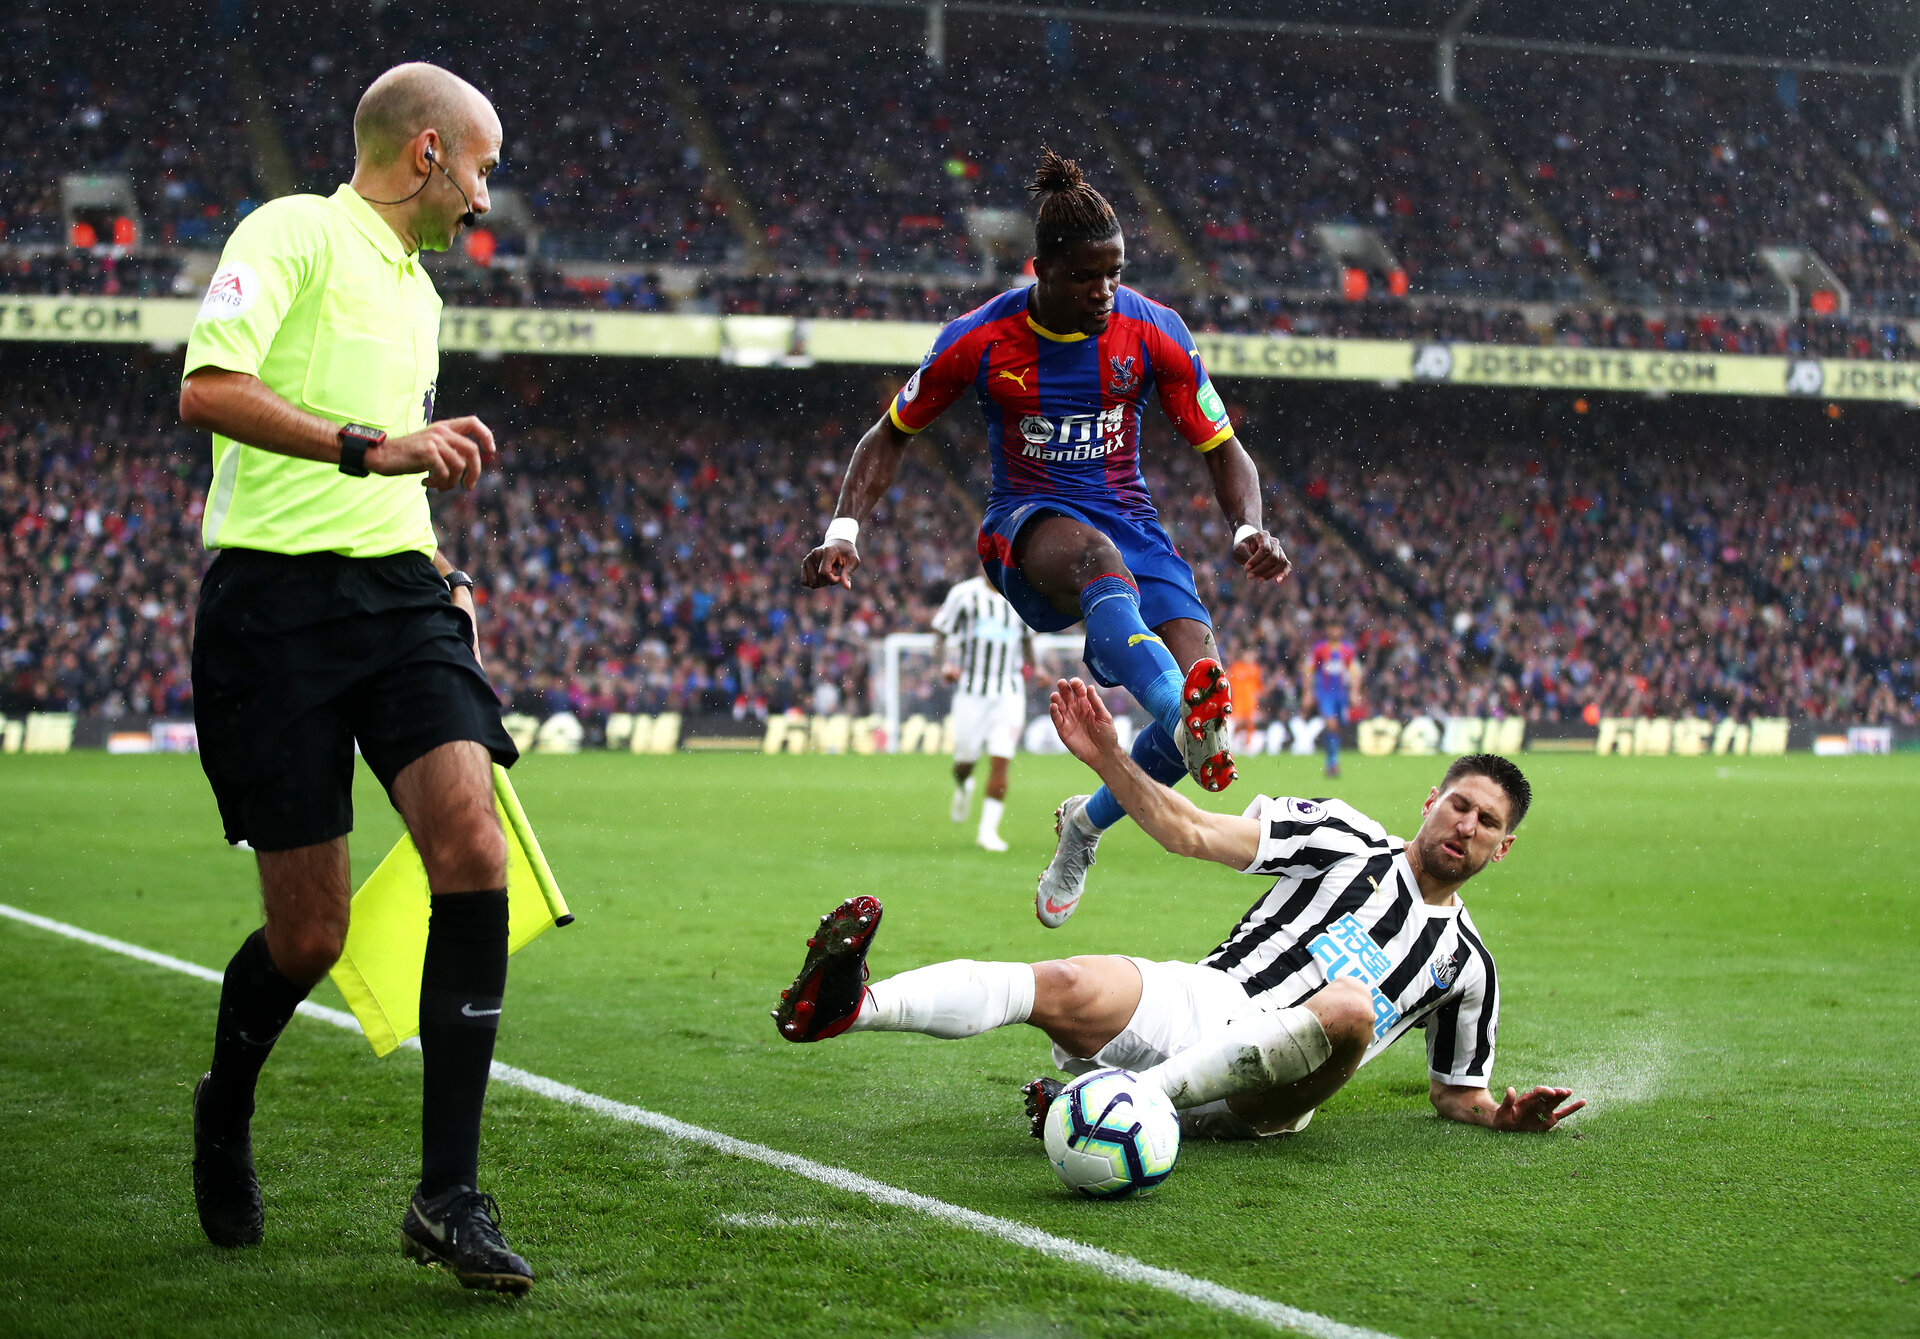 LONDON, ENGLAND - SEPTEMBER 22:  Wilfried Zaha of Crystal Palace jumps clear of a challenge from Federico Fernandez of Newcastle United during the Premier League match between Crystal Palace and Newcastle United at Selhurst Park on September 22, 2018 in London, United Kingdom.  (Photo by Julian Finney/Getty Images)